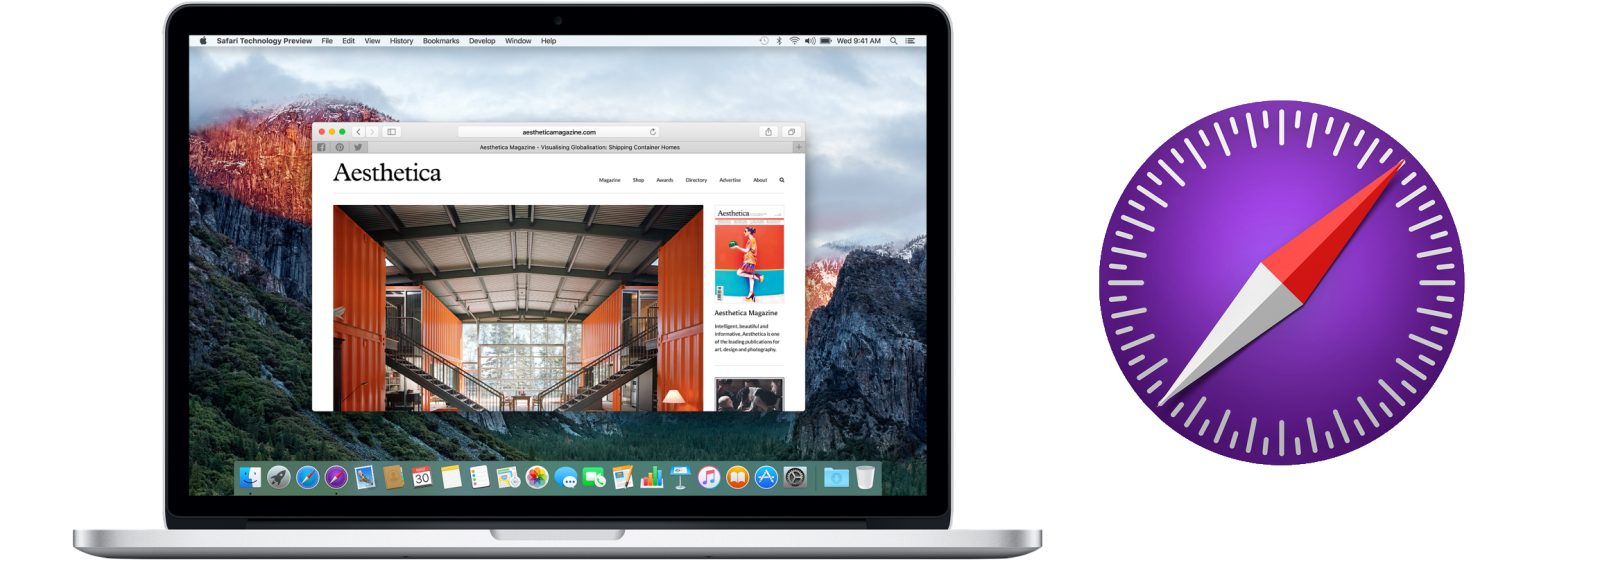 Safari Technology Preview 46 brings Service Workers to Apple's